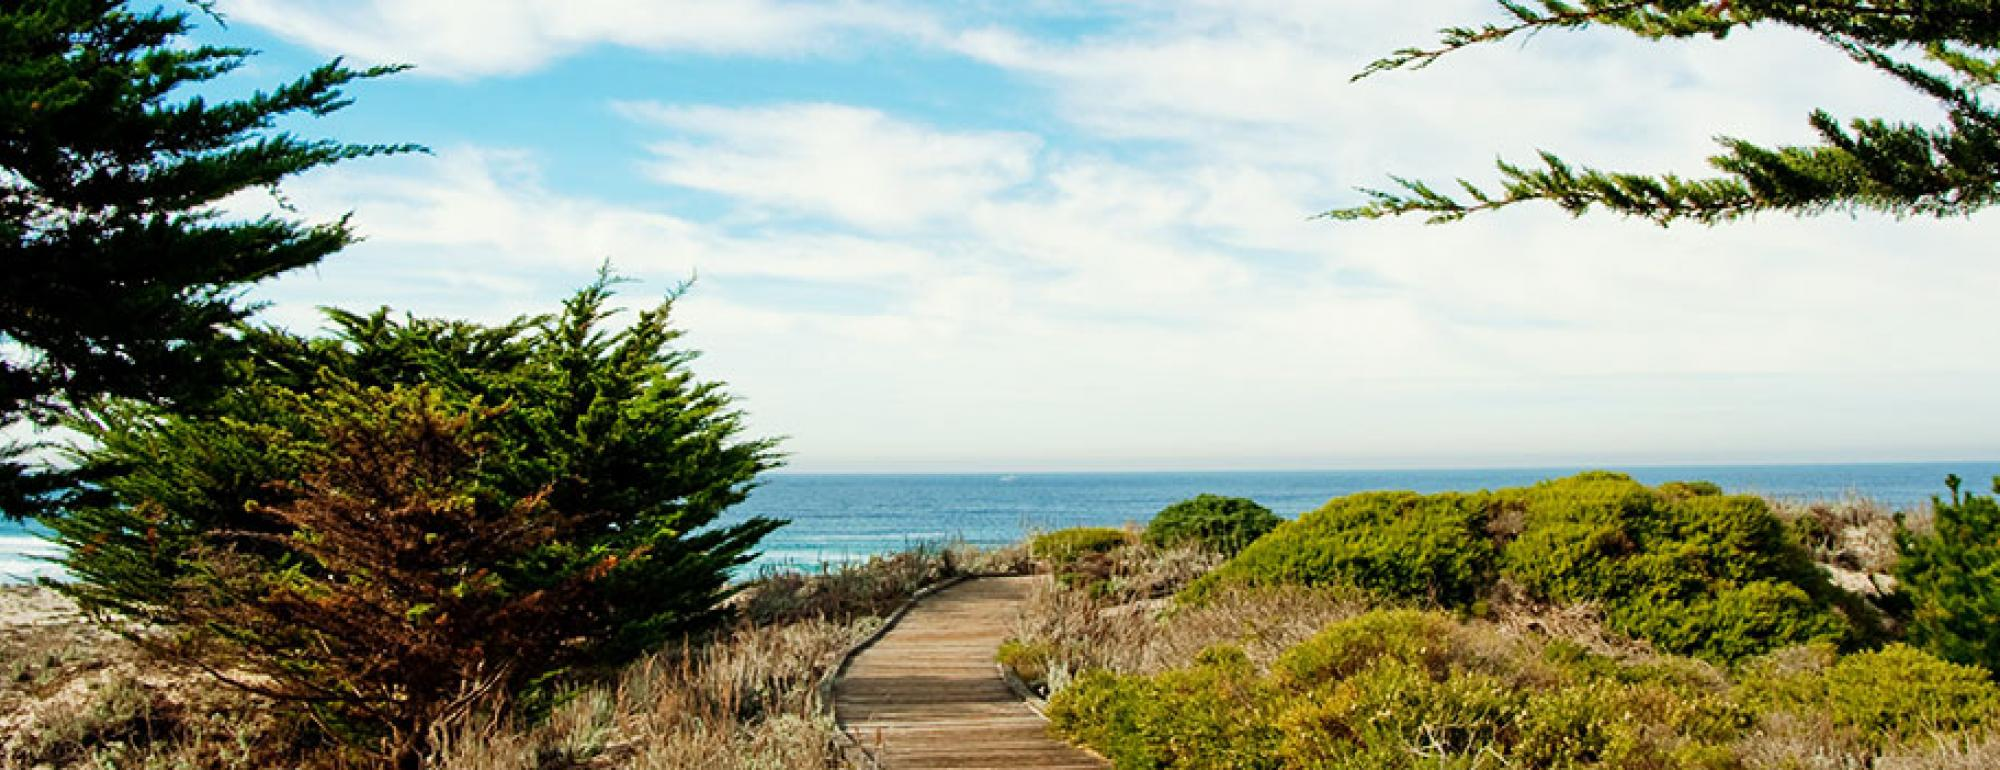 Asilomar Conference Grounds, Pacific Grove, California